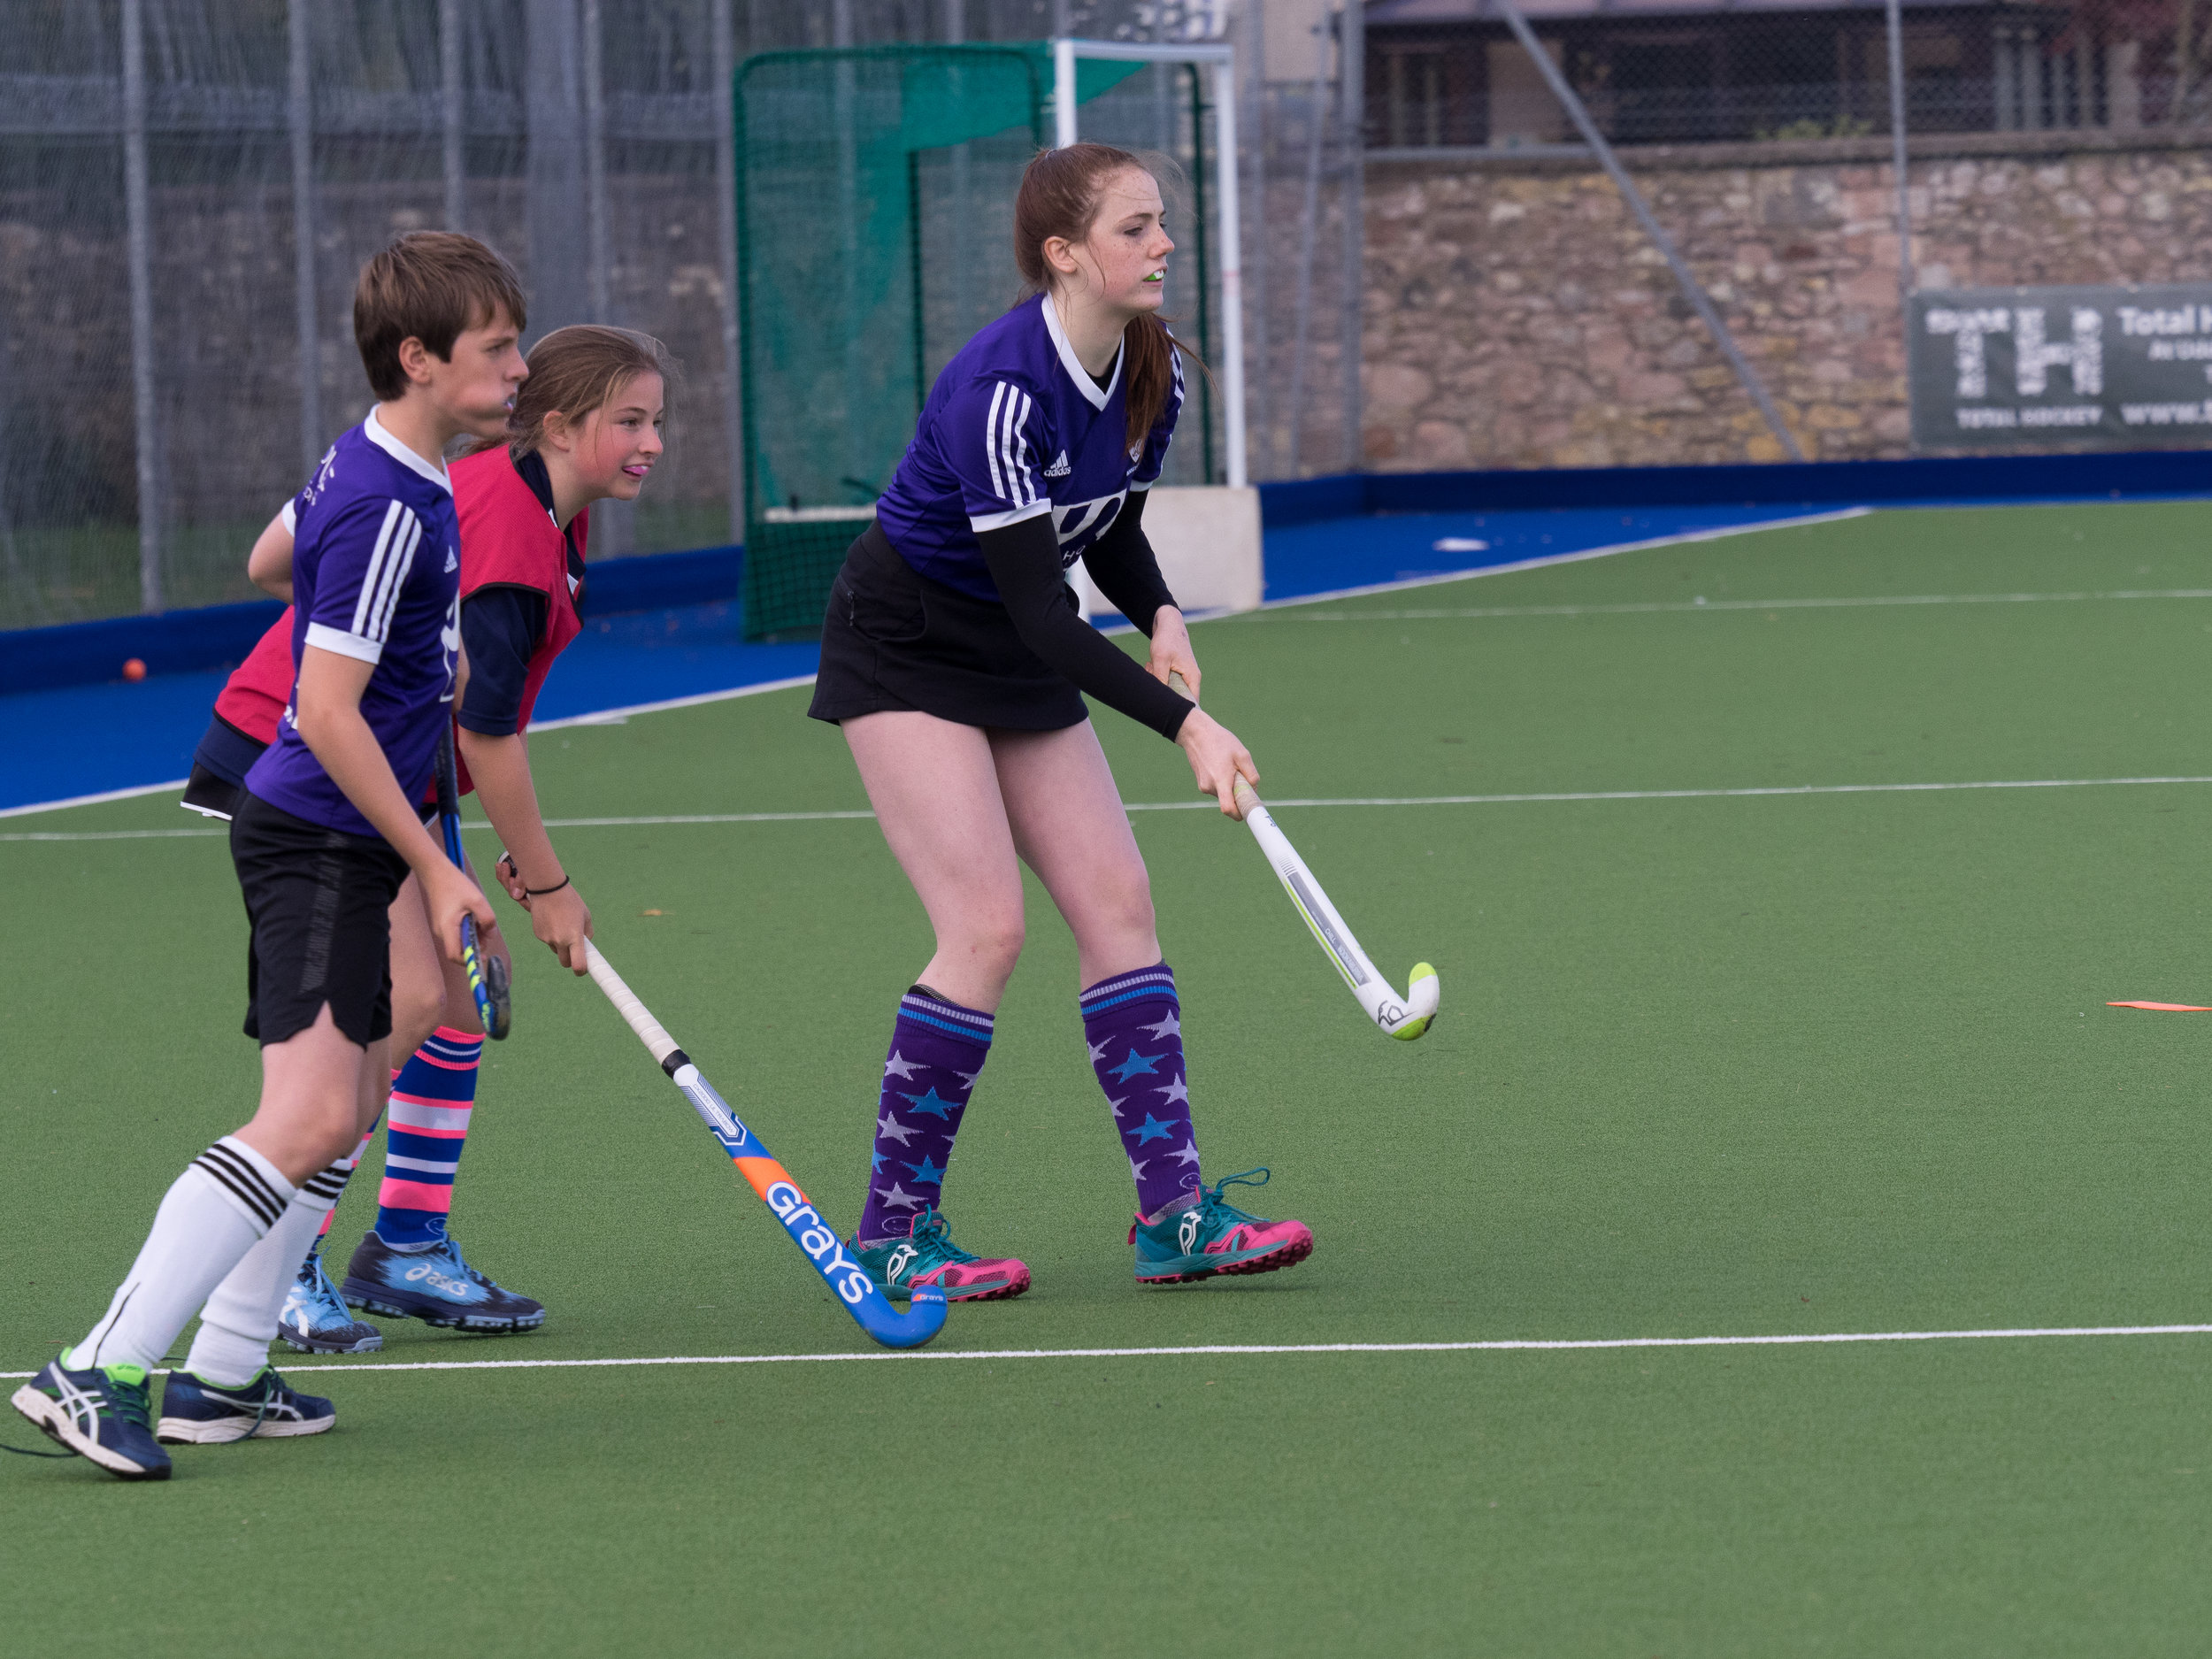 Kinross Hockey Sept 30th-3.jpg